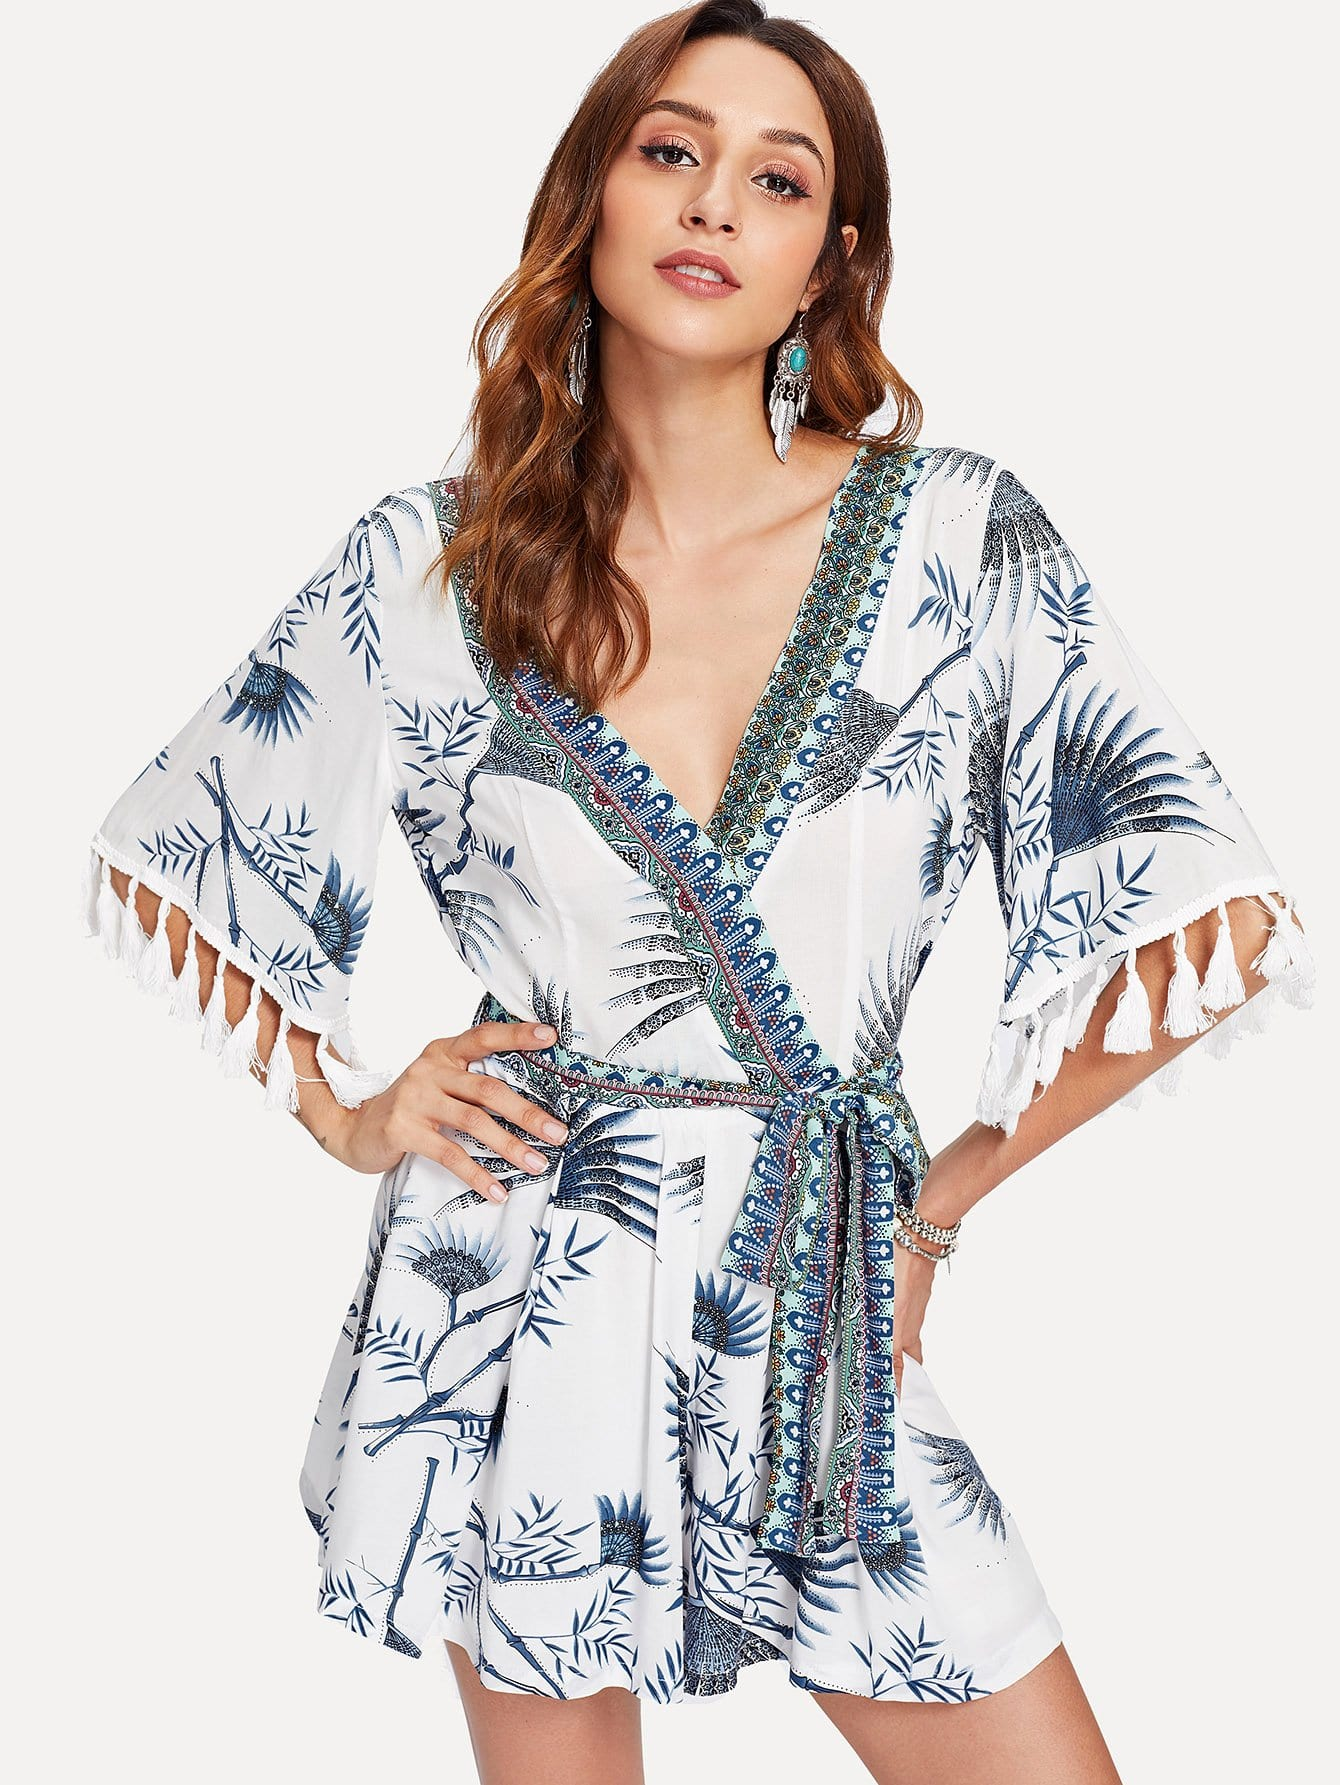 Mixed Print Tassel Detail Self Belted Wrap Romper коврики автомобильные skyway s01702039